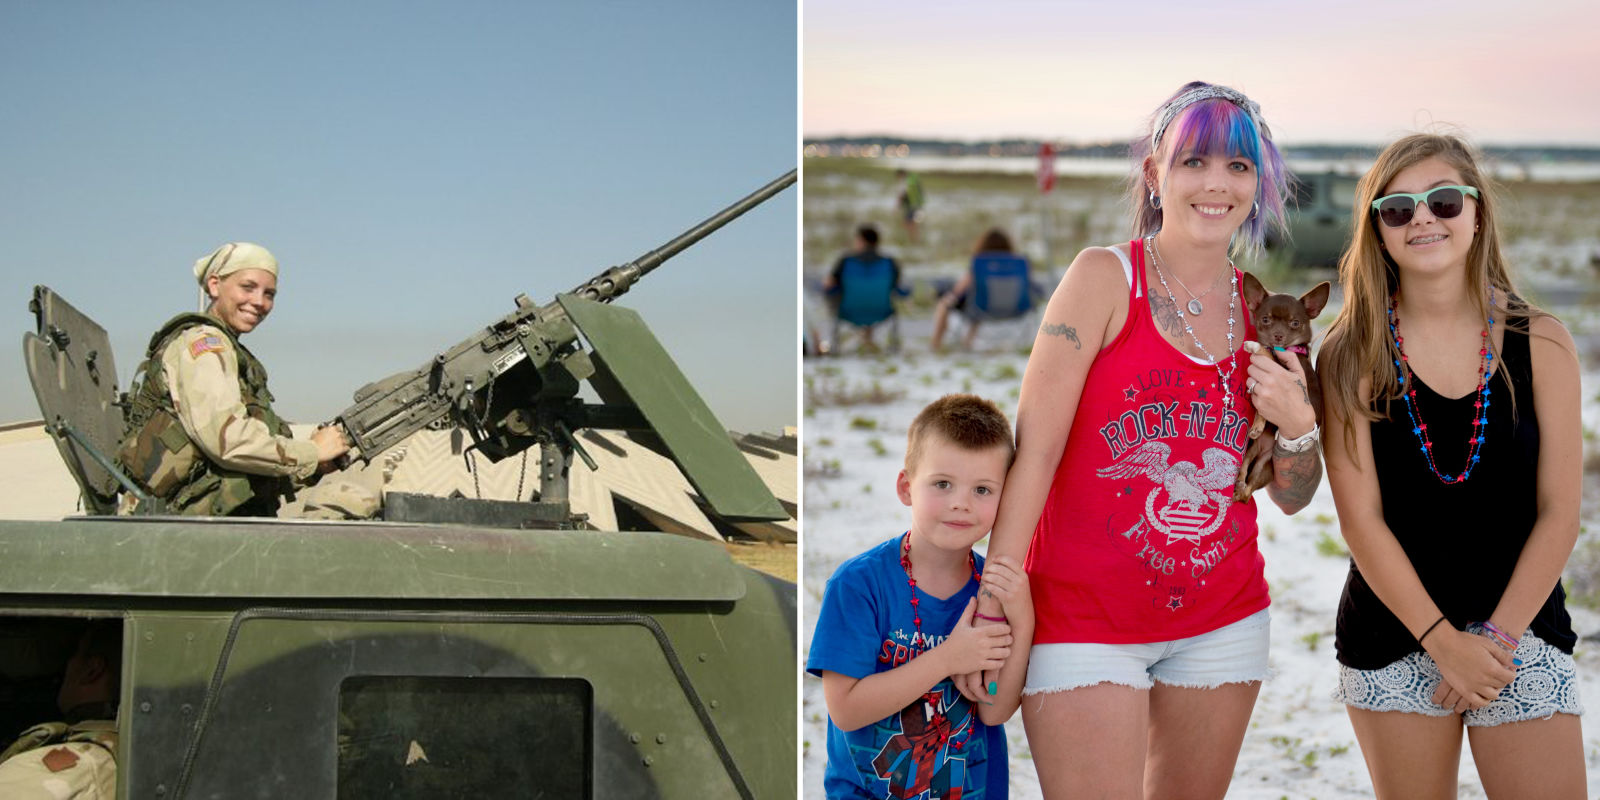 A Female Veteran With PTSD - PTSD Impact on Being a Parent